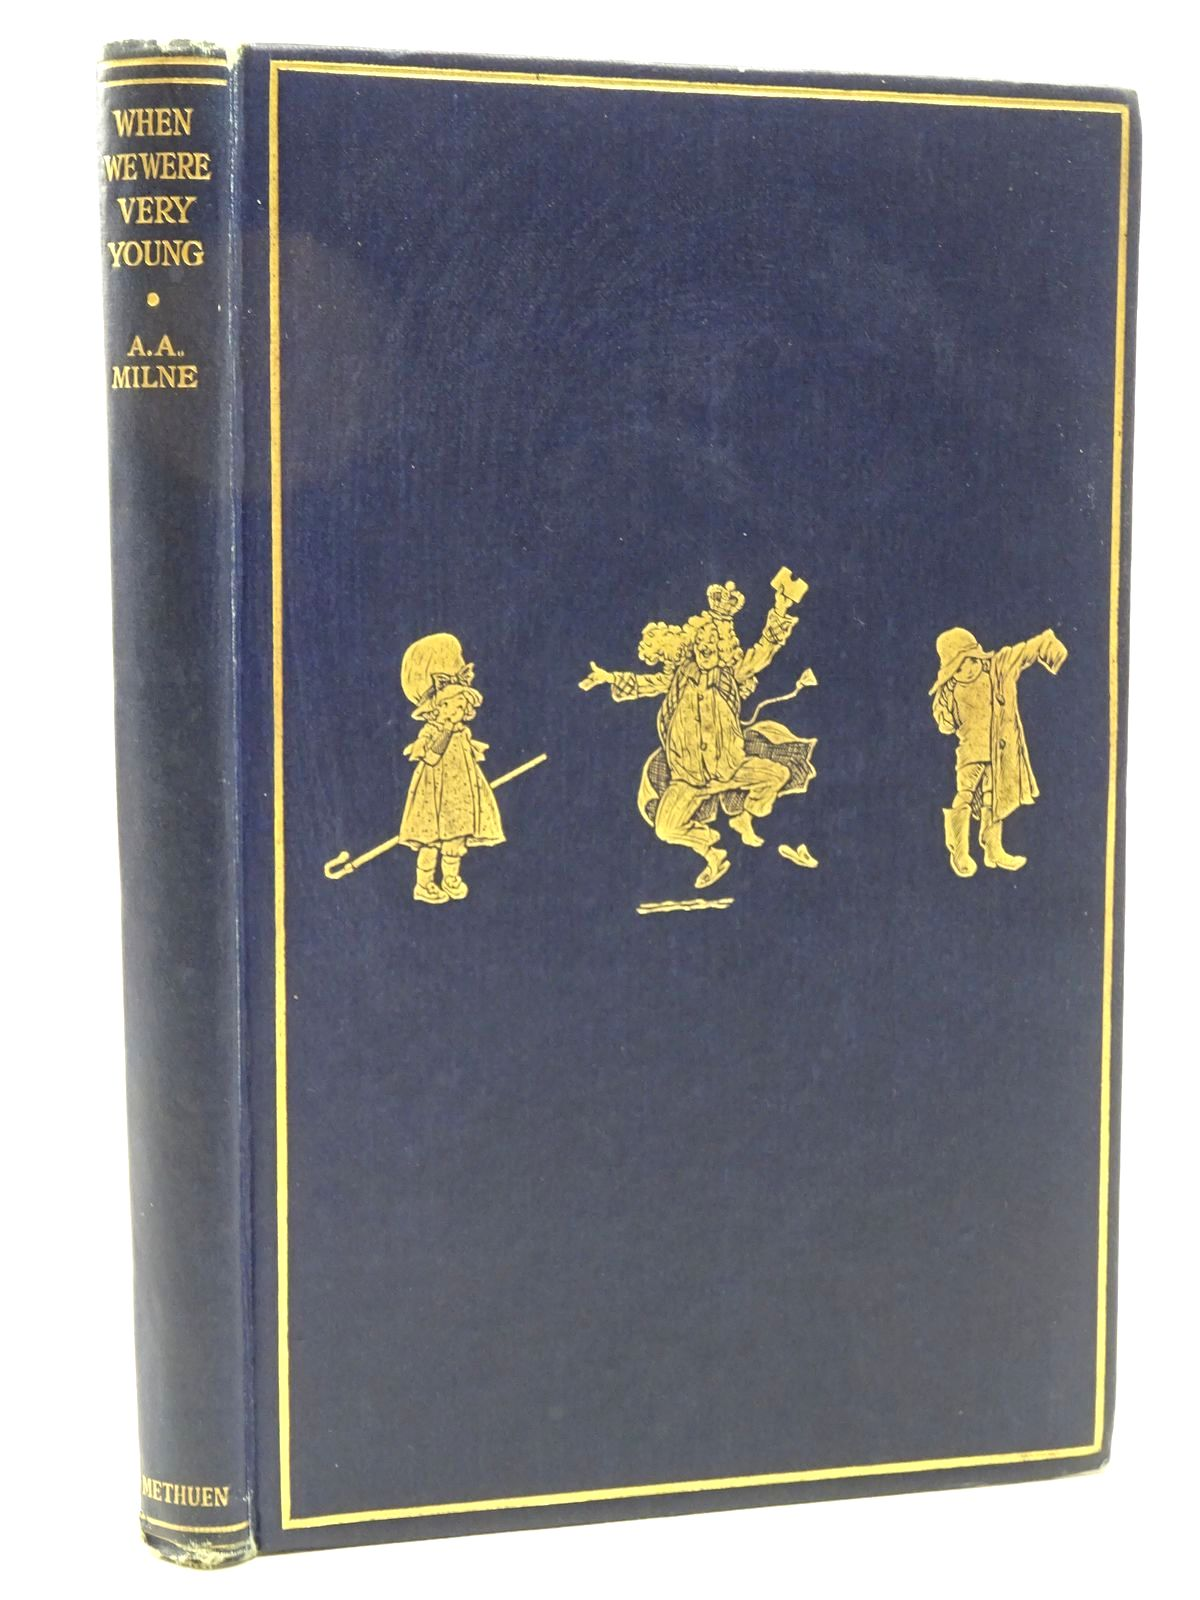 Photo of WHEN WE WERE VERY YOUNG written by Milne, A.A. illustrated by Shepard, E.H. published by Methuen & Co. Ltd. (STOCK CODE: 2124410)  for sale by Stella & Rose's Books